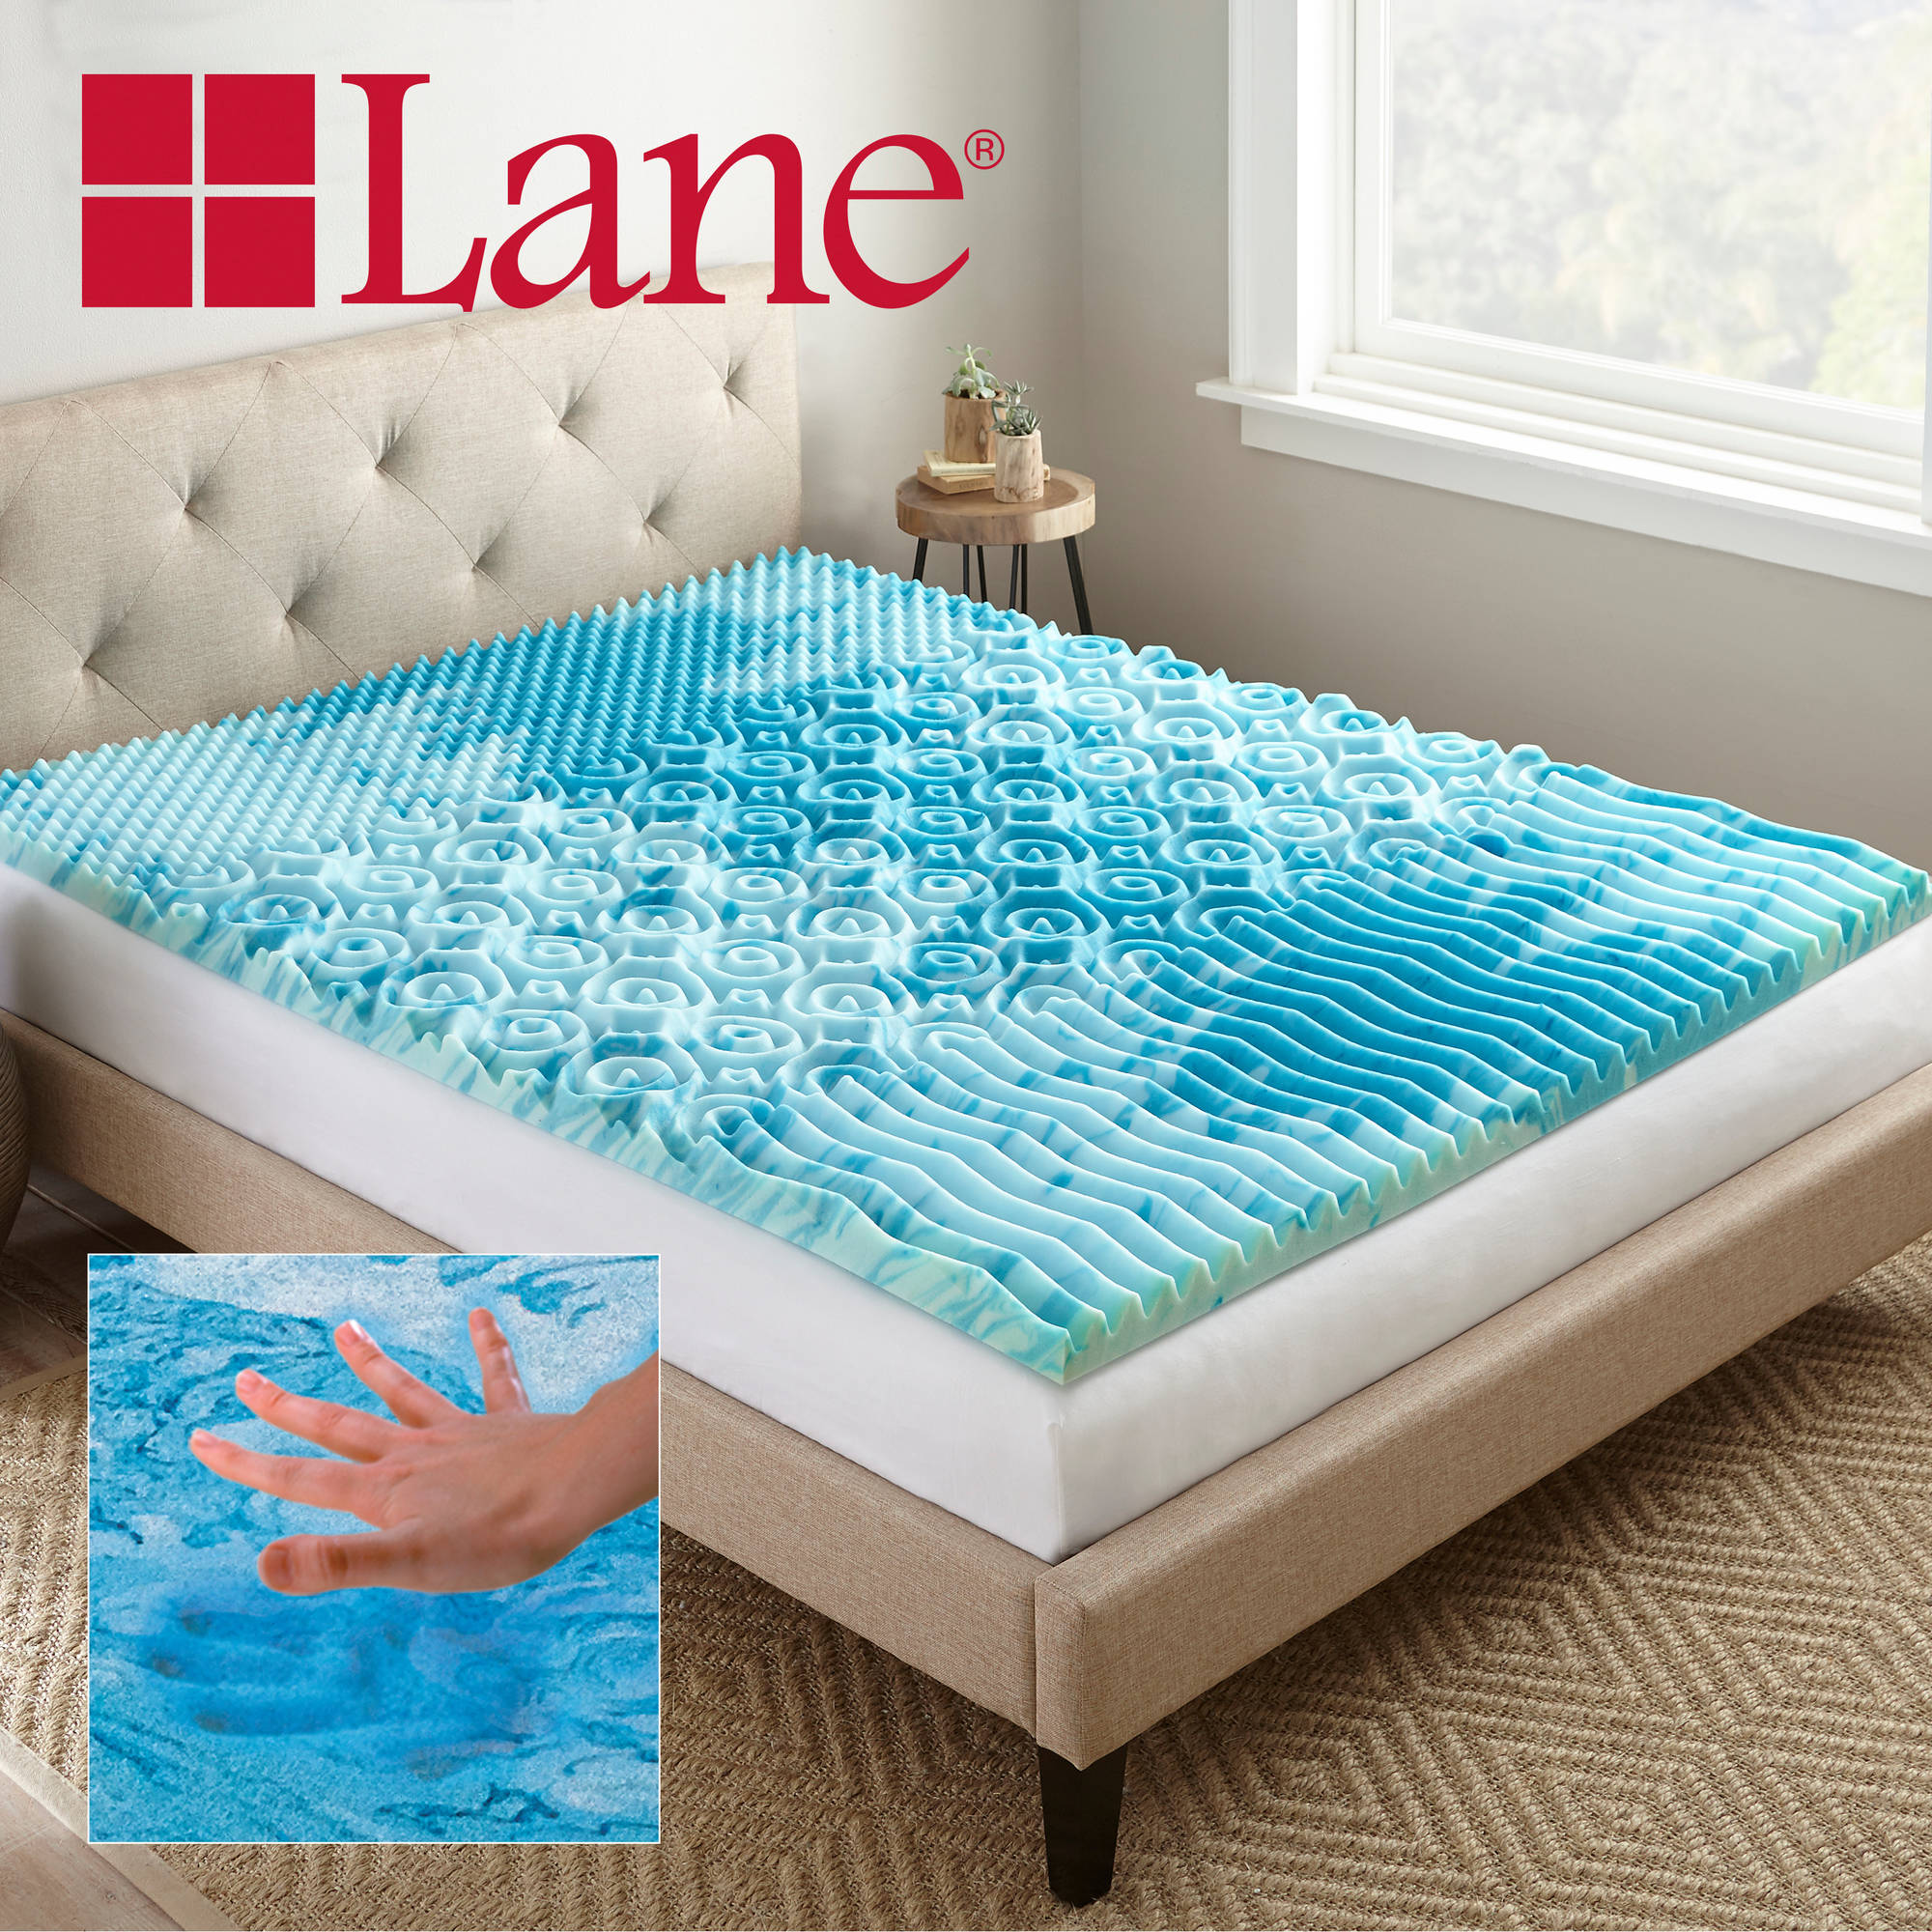 Lane 2 Inch Cooling Gellux Memory Foam Gel Mattress Topper